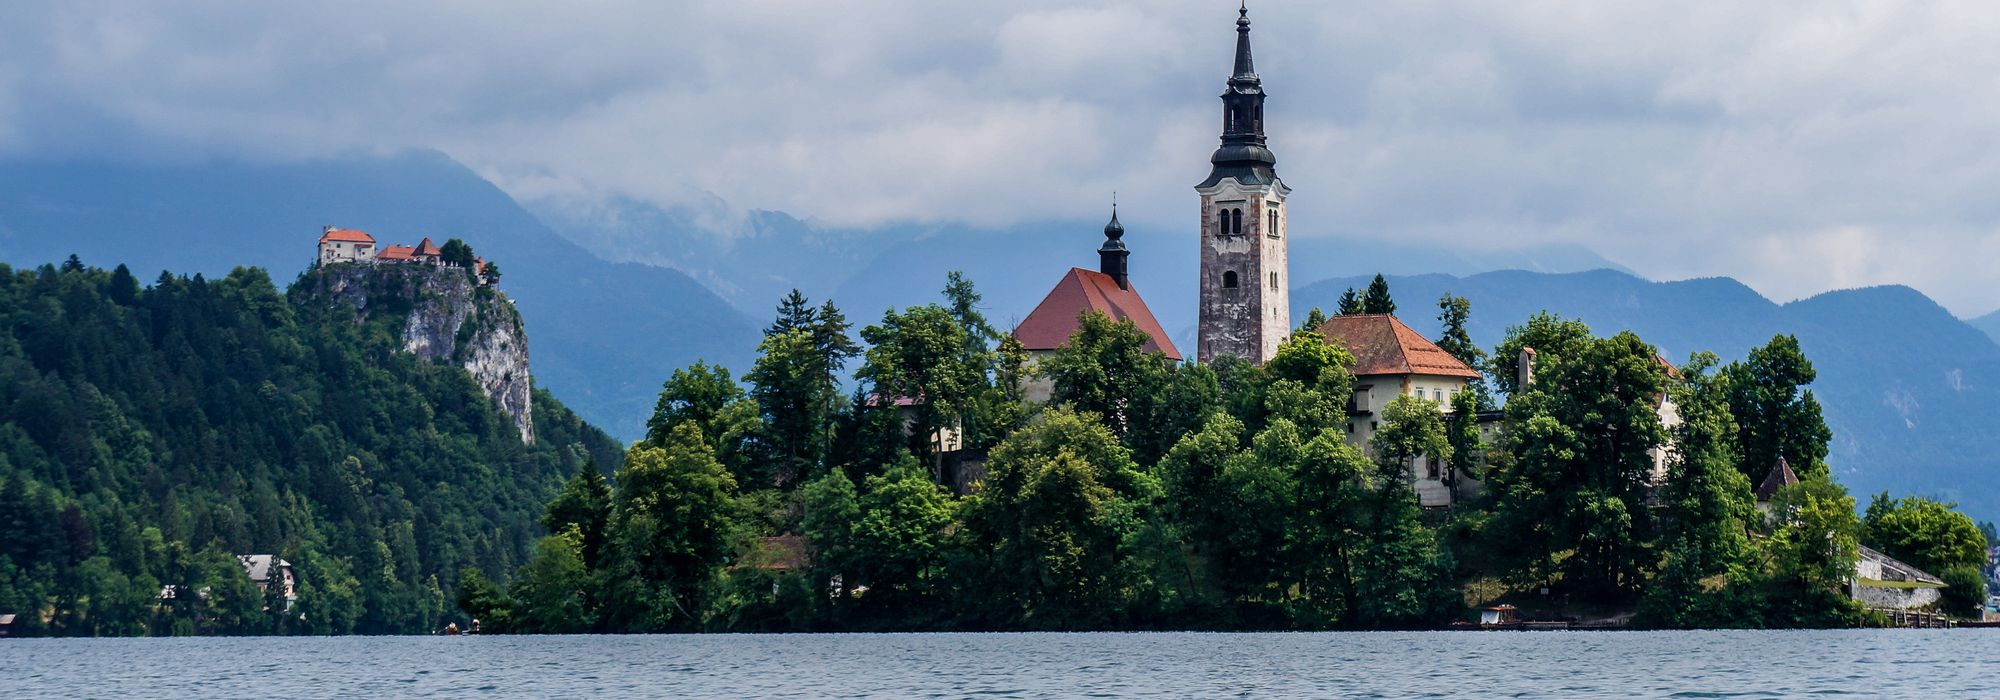 The monastery at Lake Bled